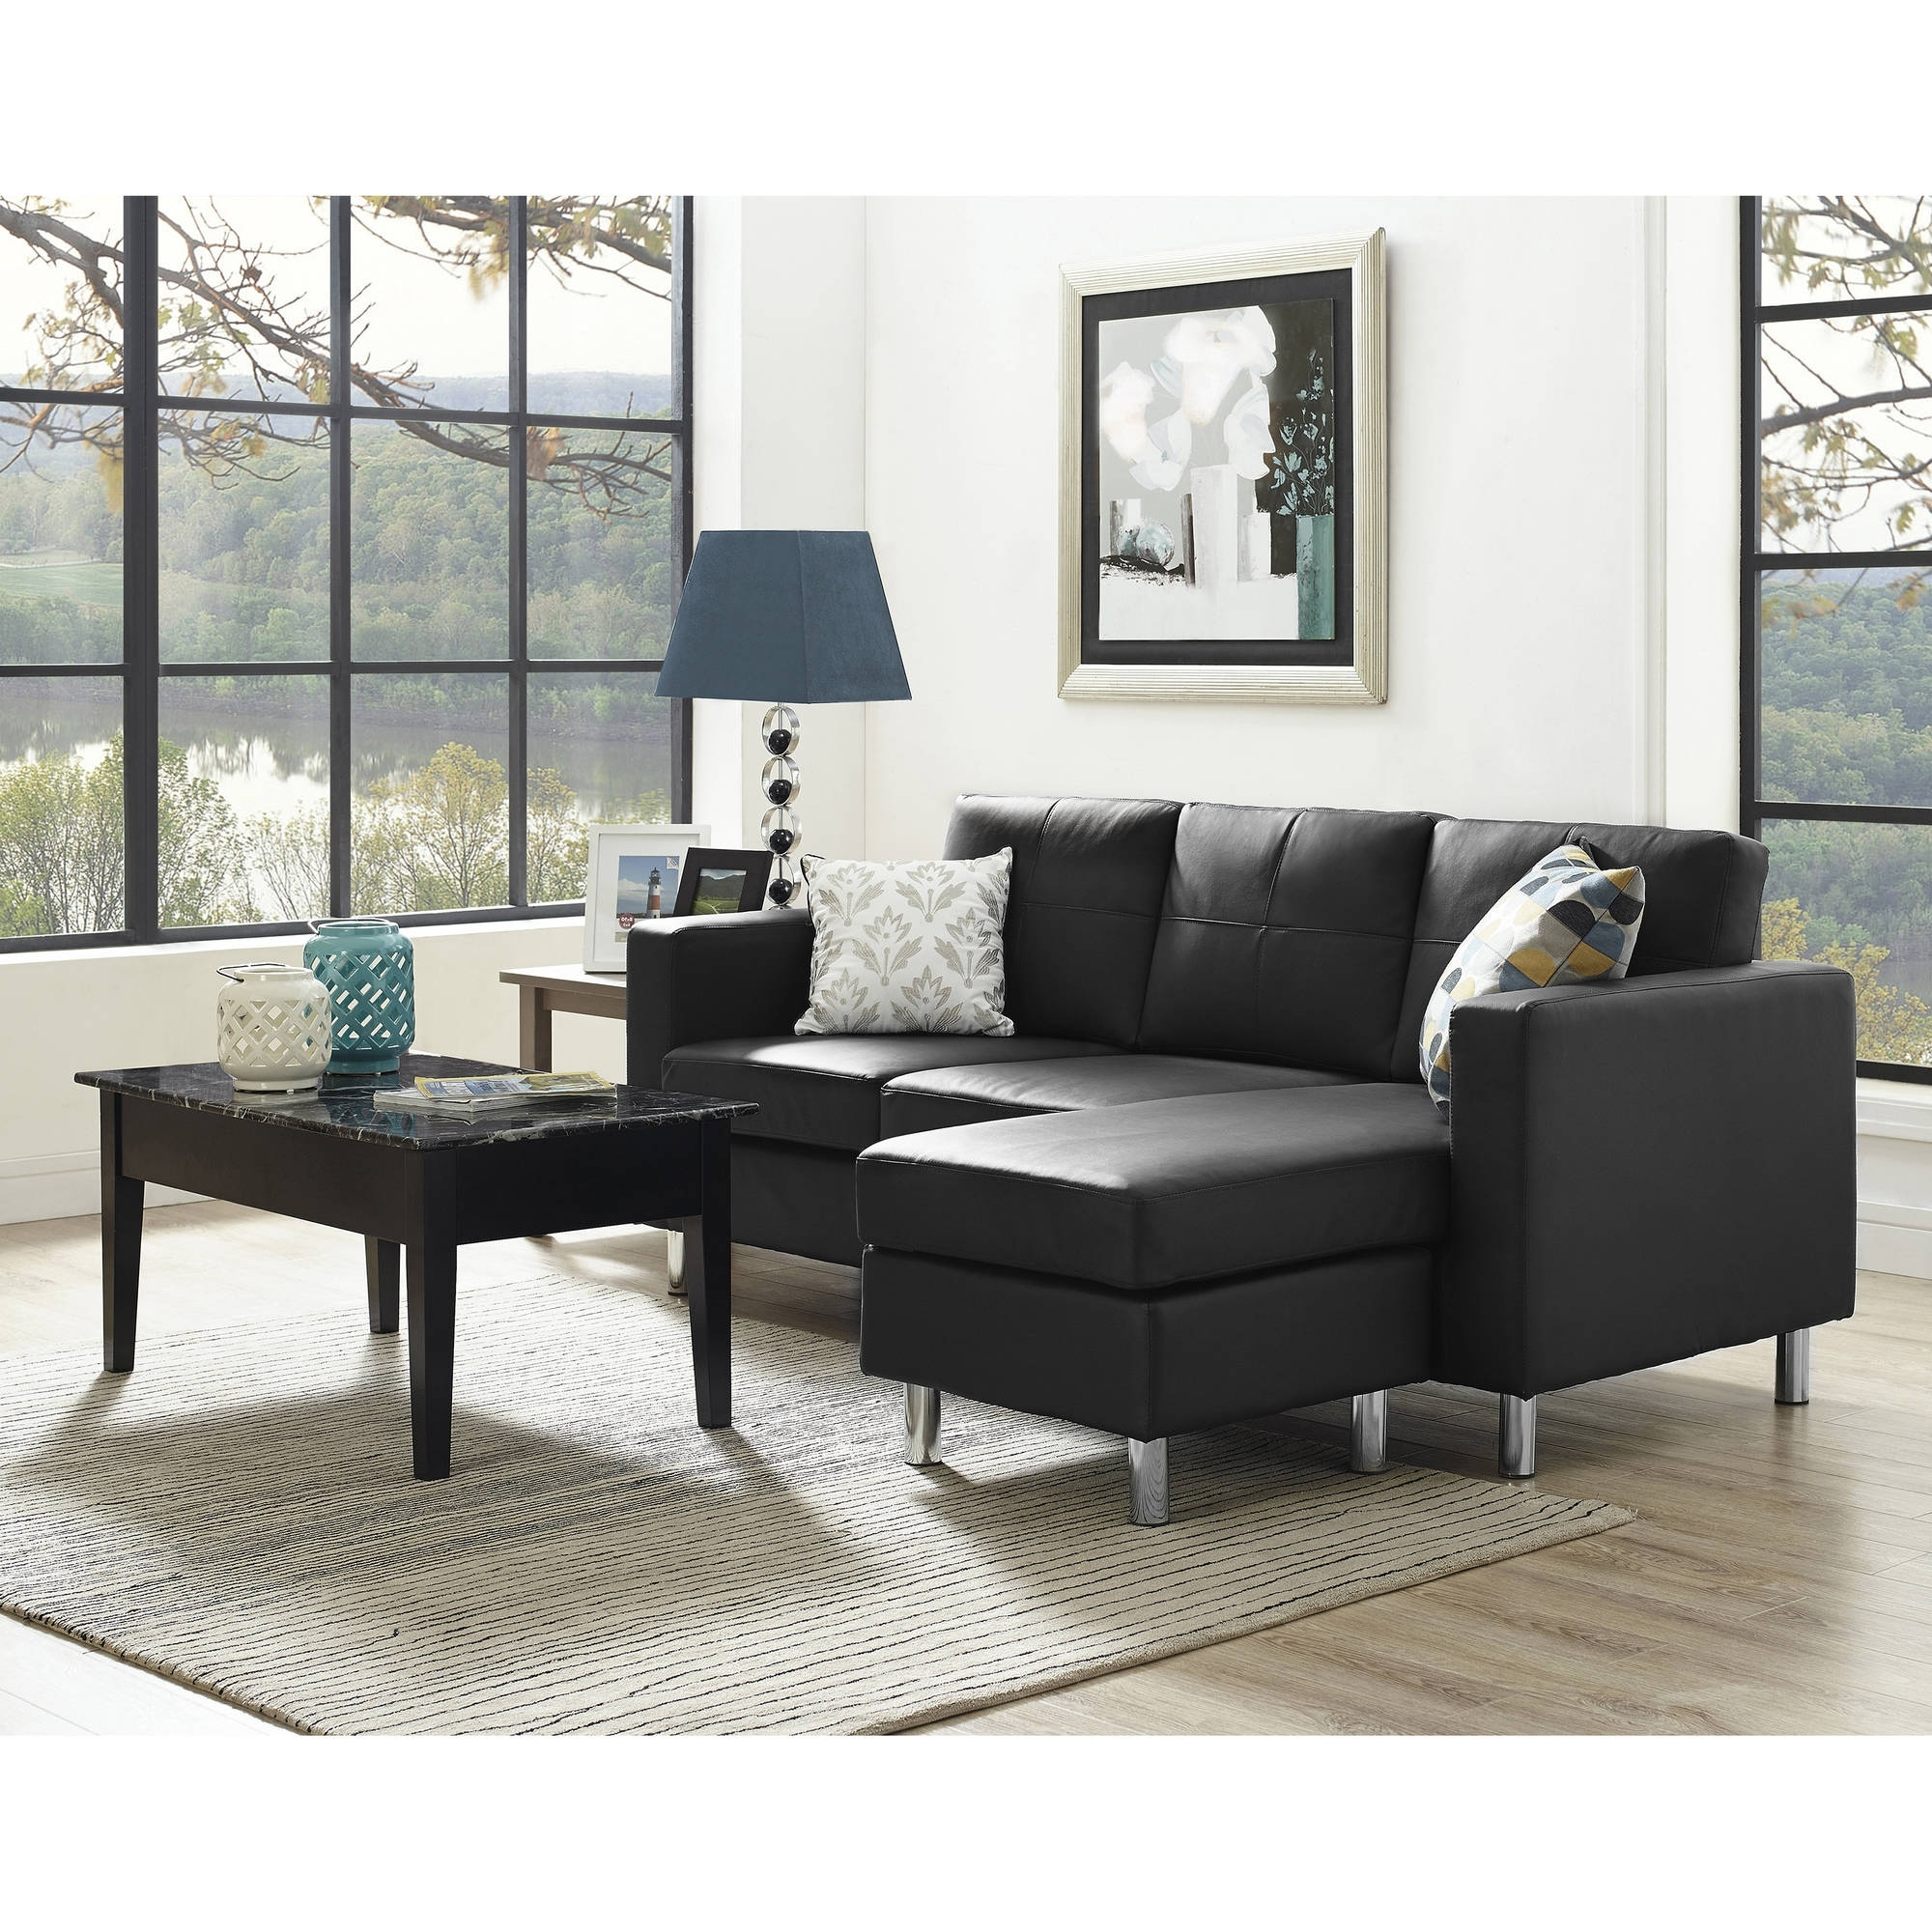 Affordable Couches (View 2 of 15)